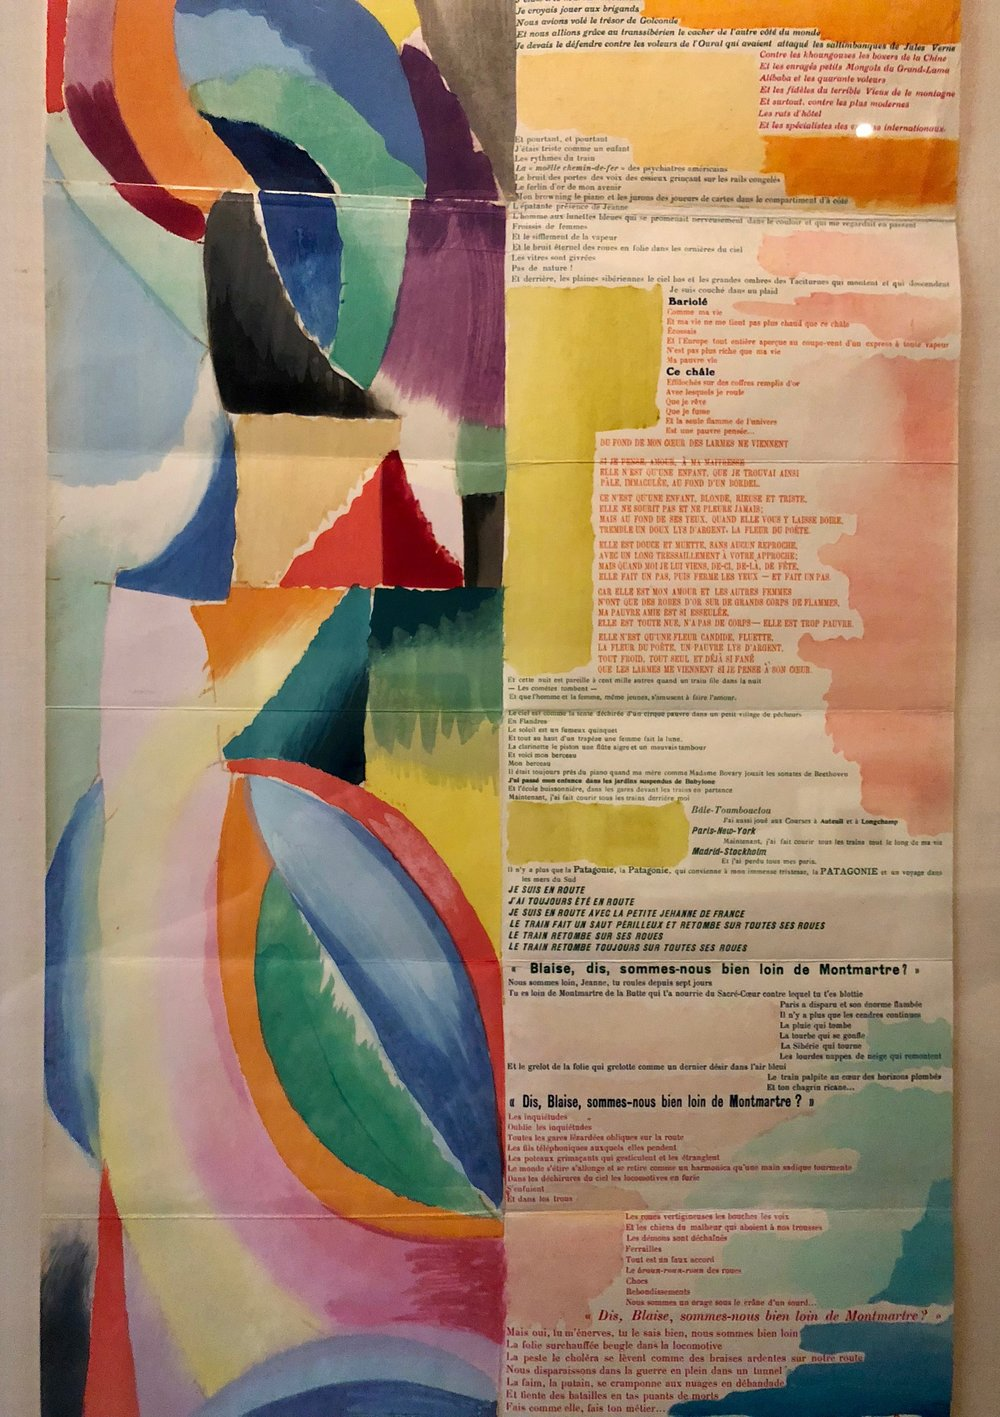 Trans-Siberian Railway and of Little Jehanne of France 1913 a collaboration between artist Sonia Delaunay poet Blaise Cendrars